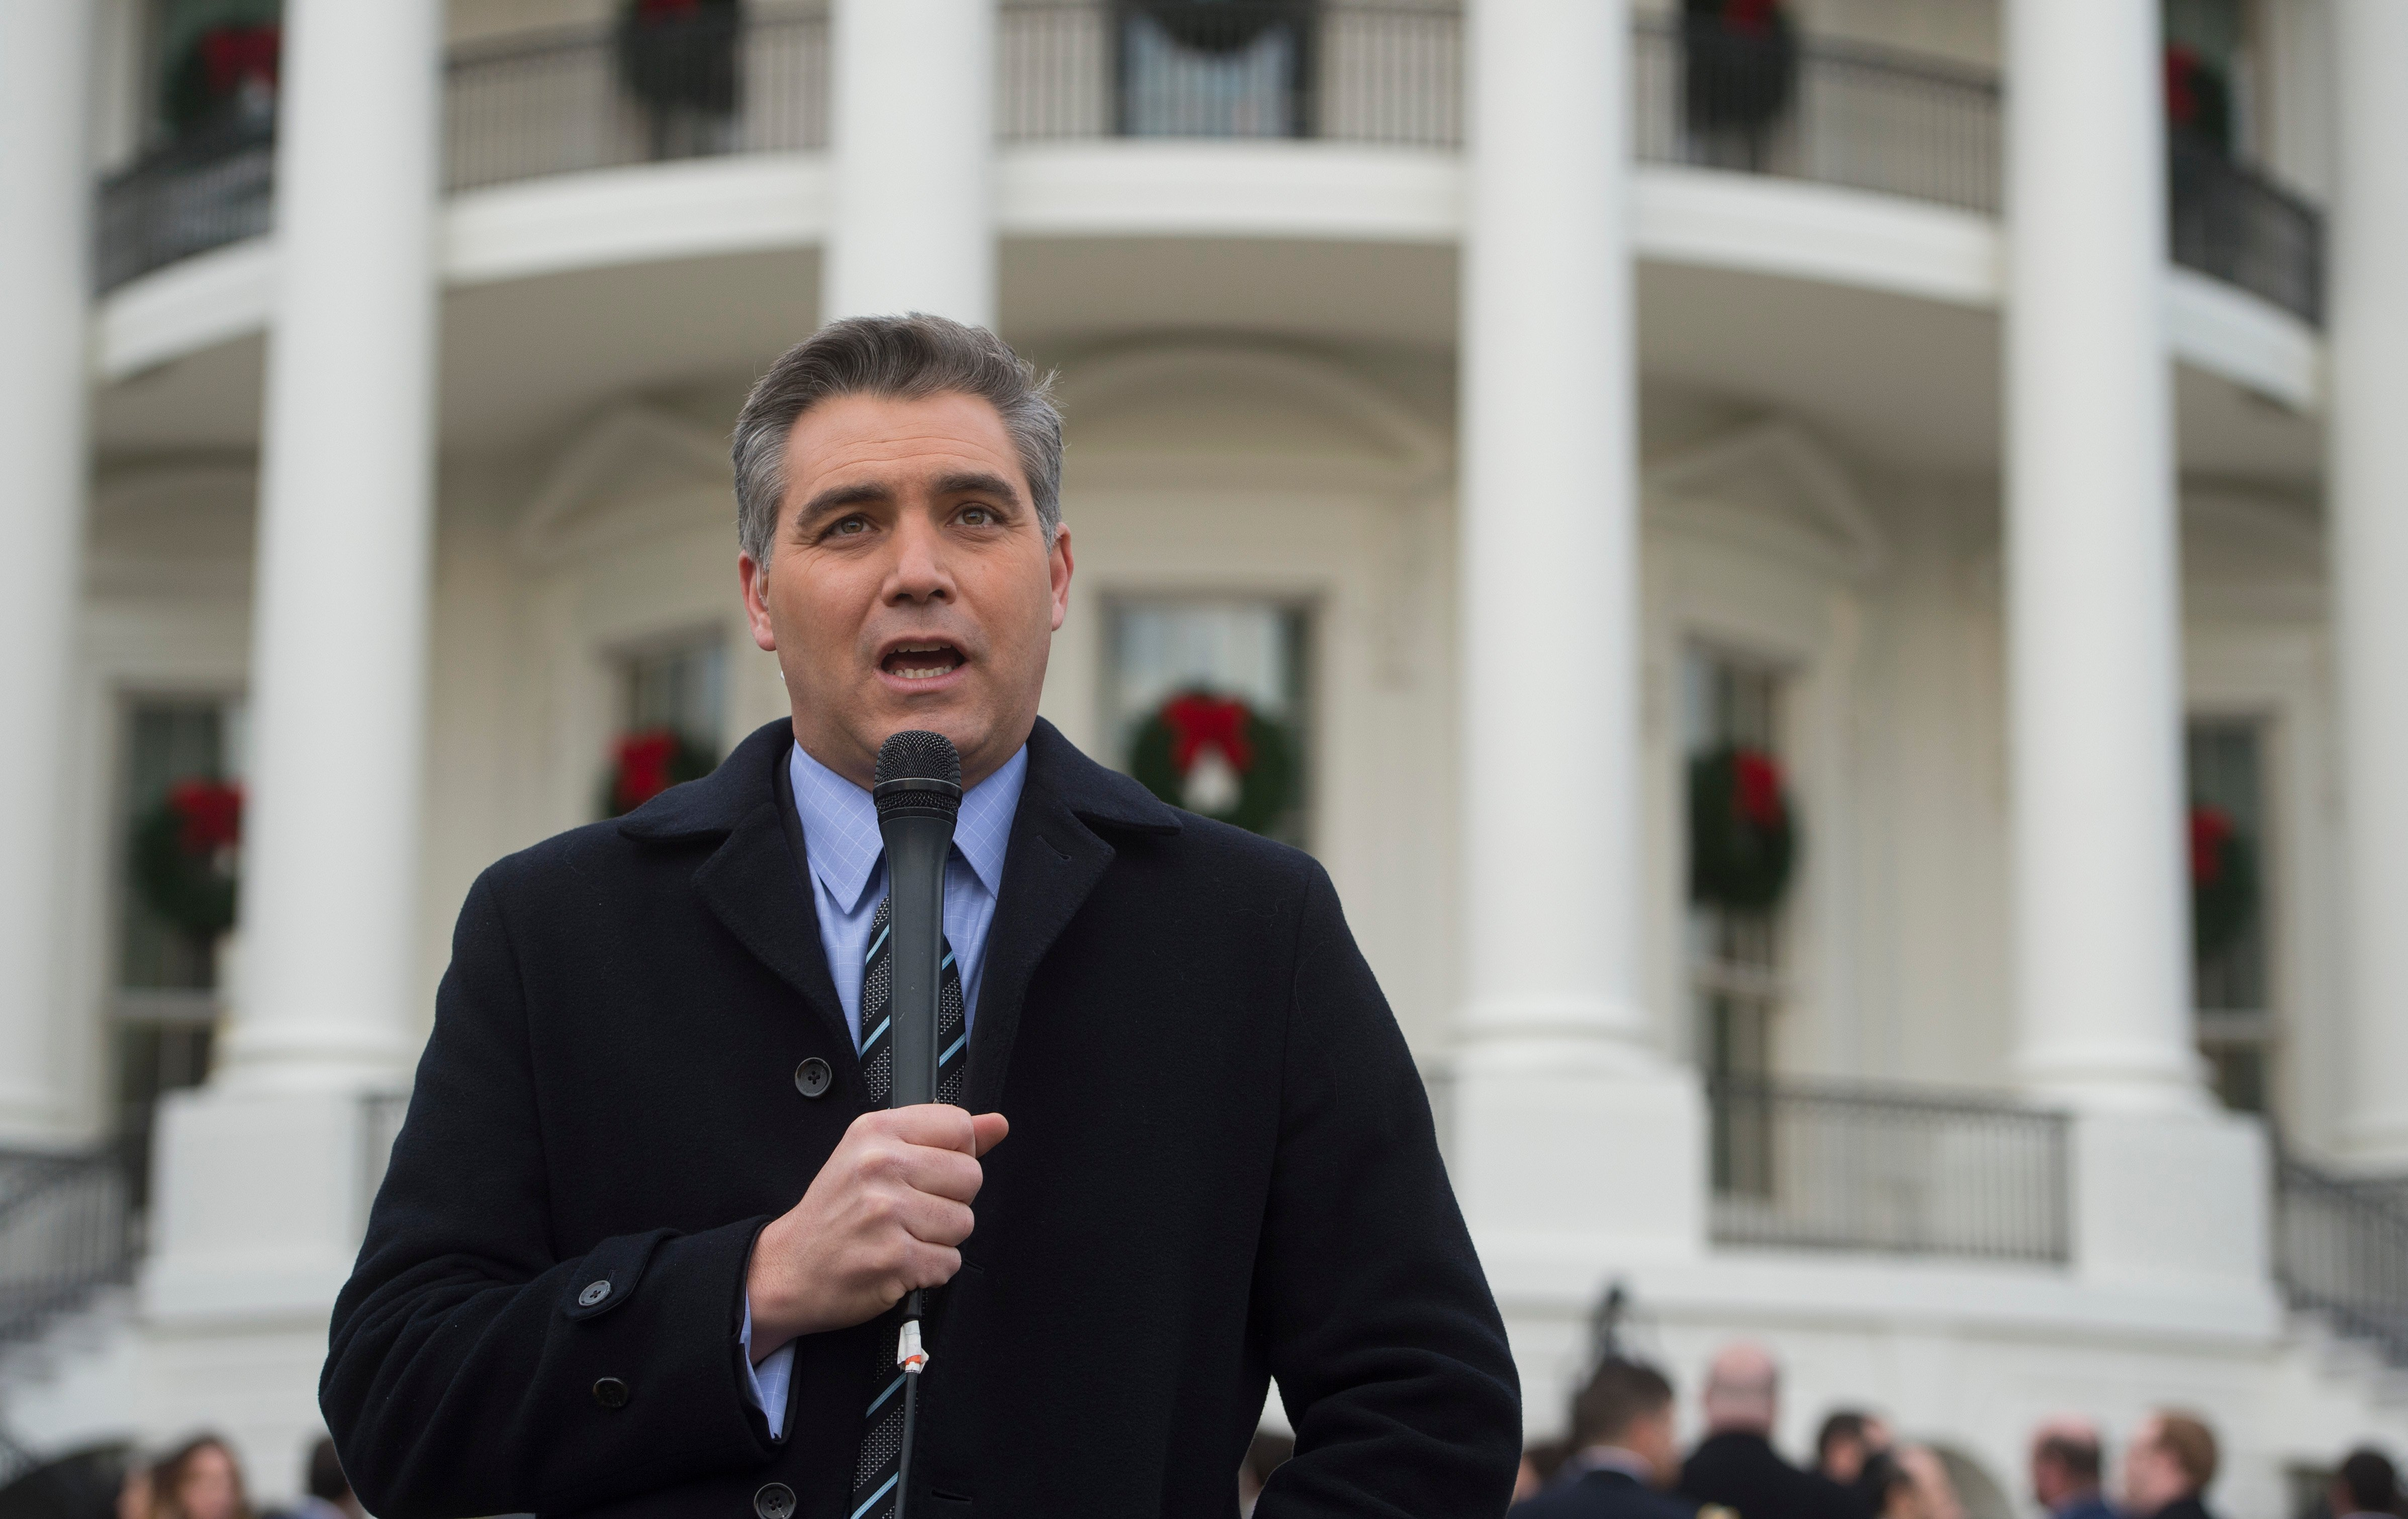 """Jim Acosta, Senior White House Correspondent for CNN, speaks on camera after US President Donald Trump held an event about the passage of tax reform legislation on the South Lawn of the White House in Washington, DC, December 20, 2017. Trump hailed a """"historic"""" victory Wednesday as the US Congress passed a massive Republican tax cut plan, handing the president his first major legislative achievement since taking office nearly a year ago. (SAUL LOEB/AFP/Getty Images)"""